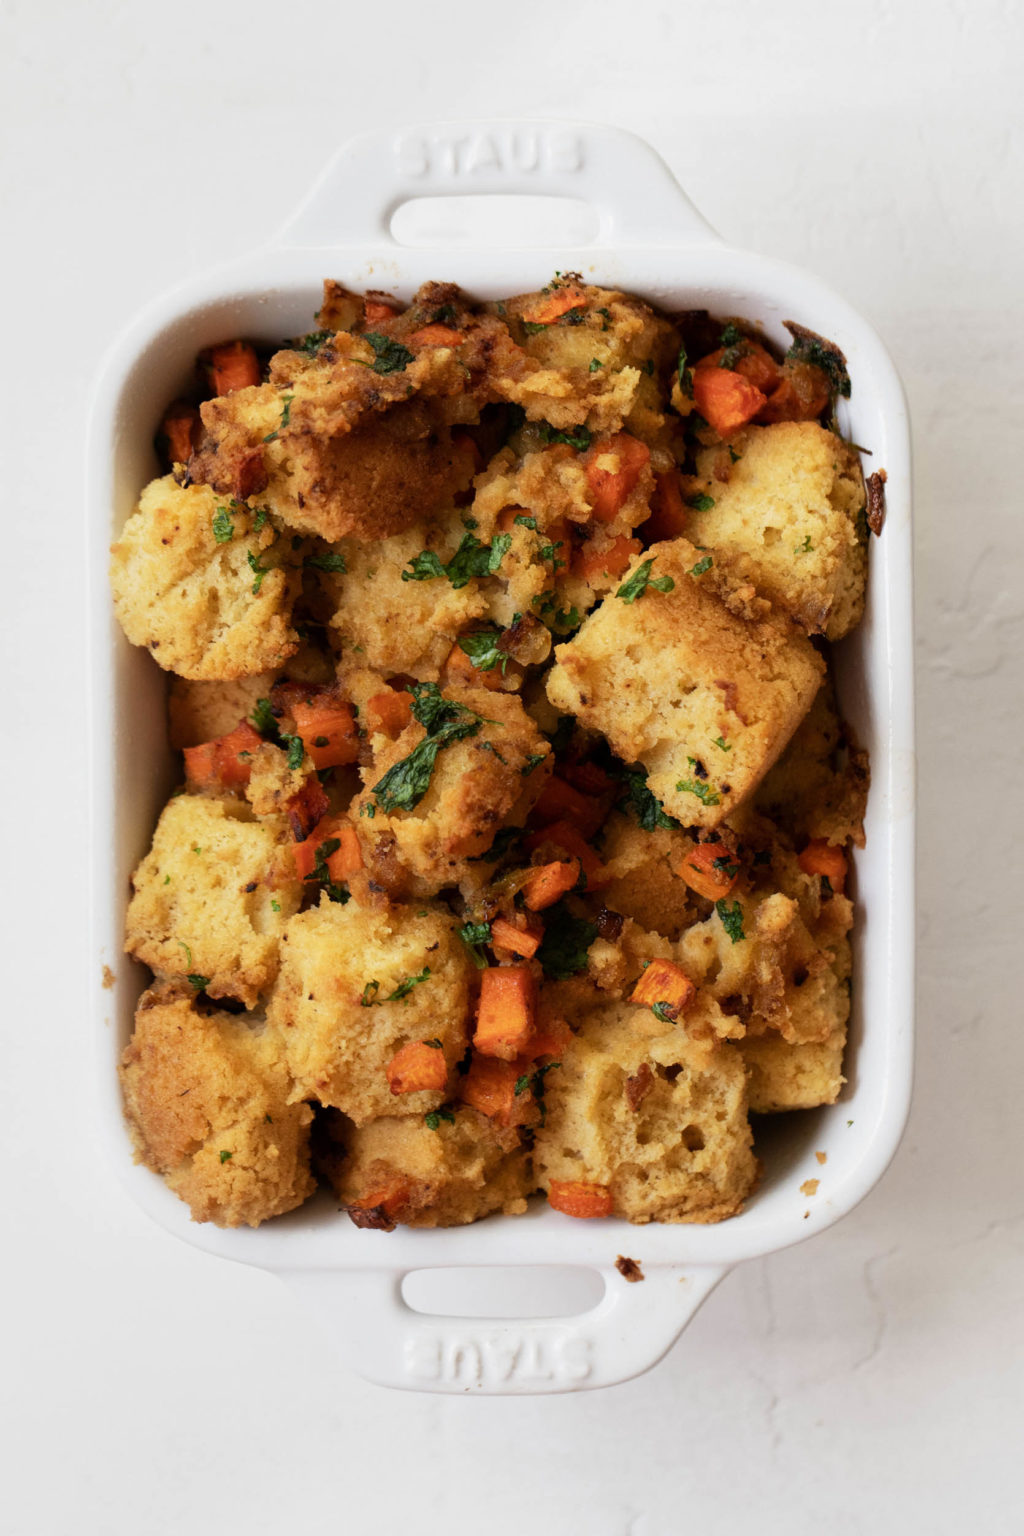 A small baking dish, filled with cornbread and vegetables.